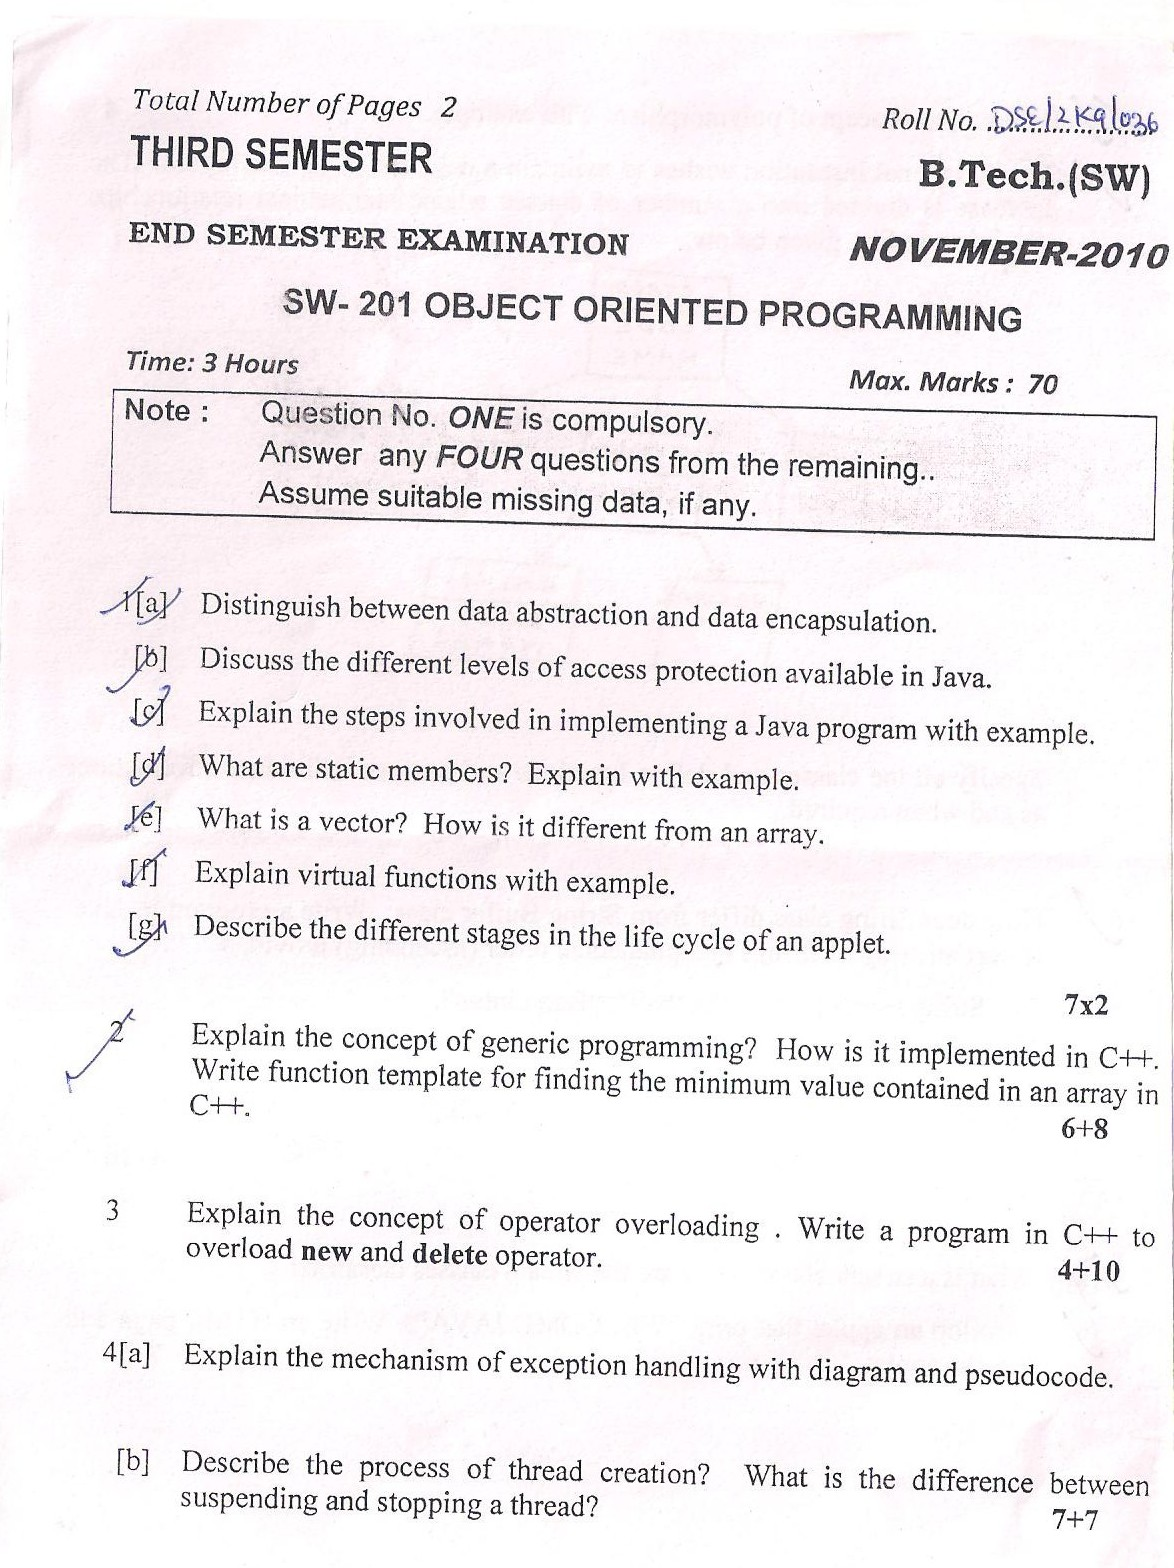 DTU Question Papers 2010 – 3 Semester - End Sem - SW-201